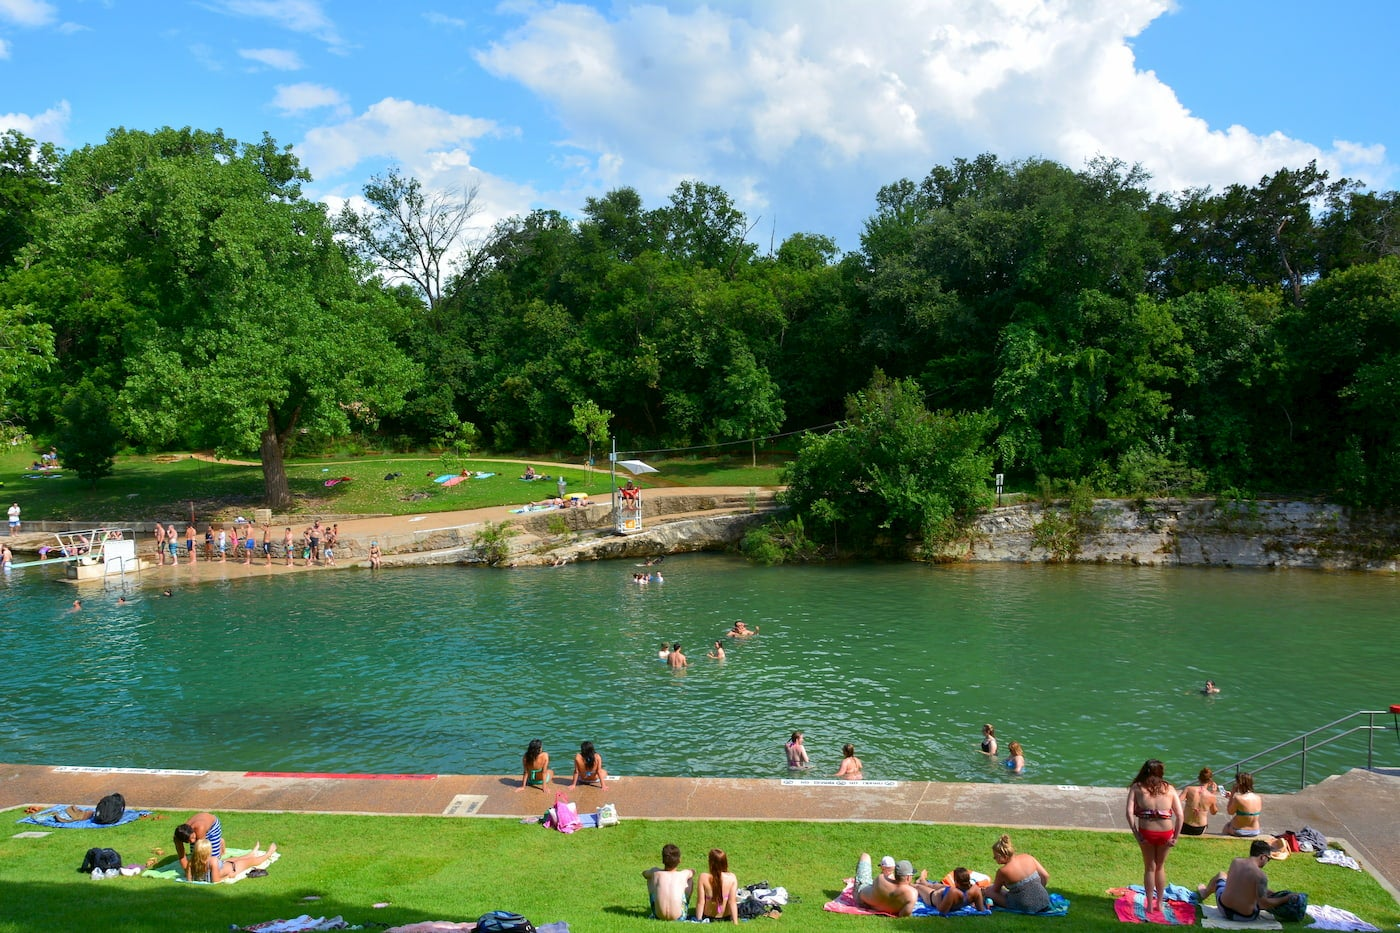 Outdoor pool surrounded by bathers.